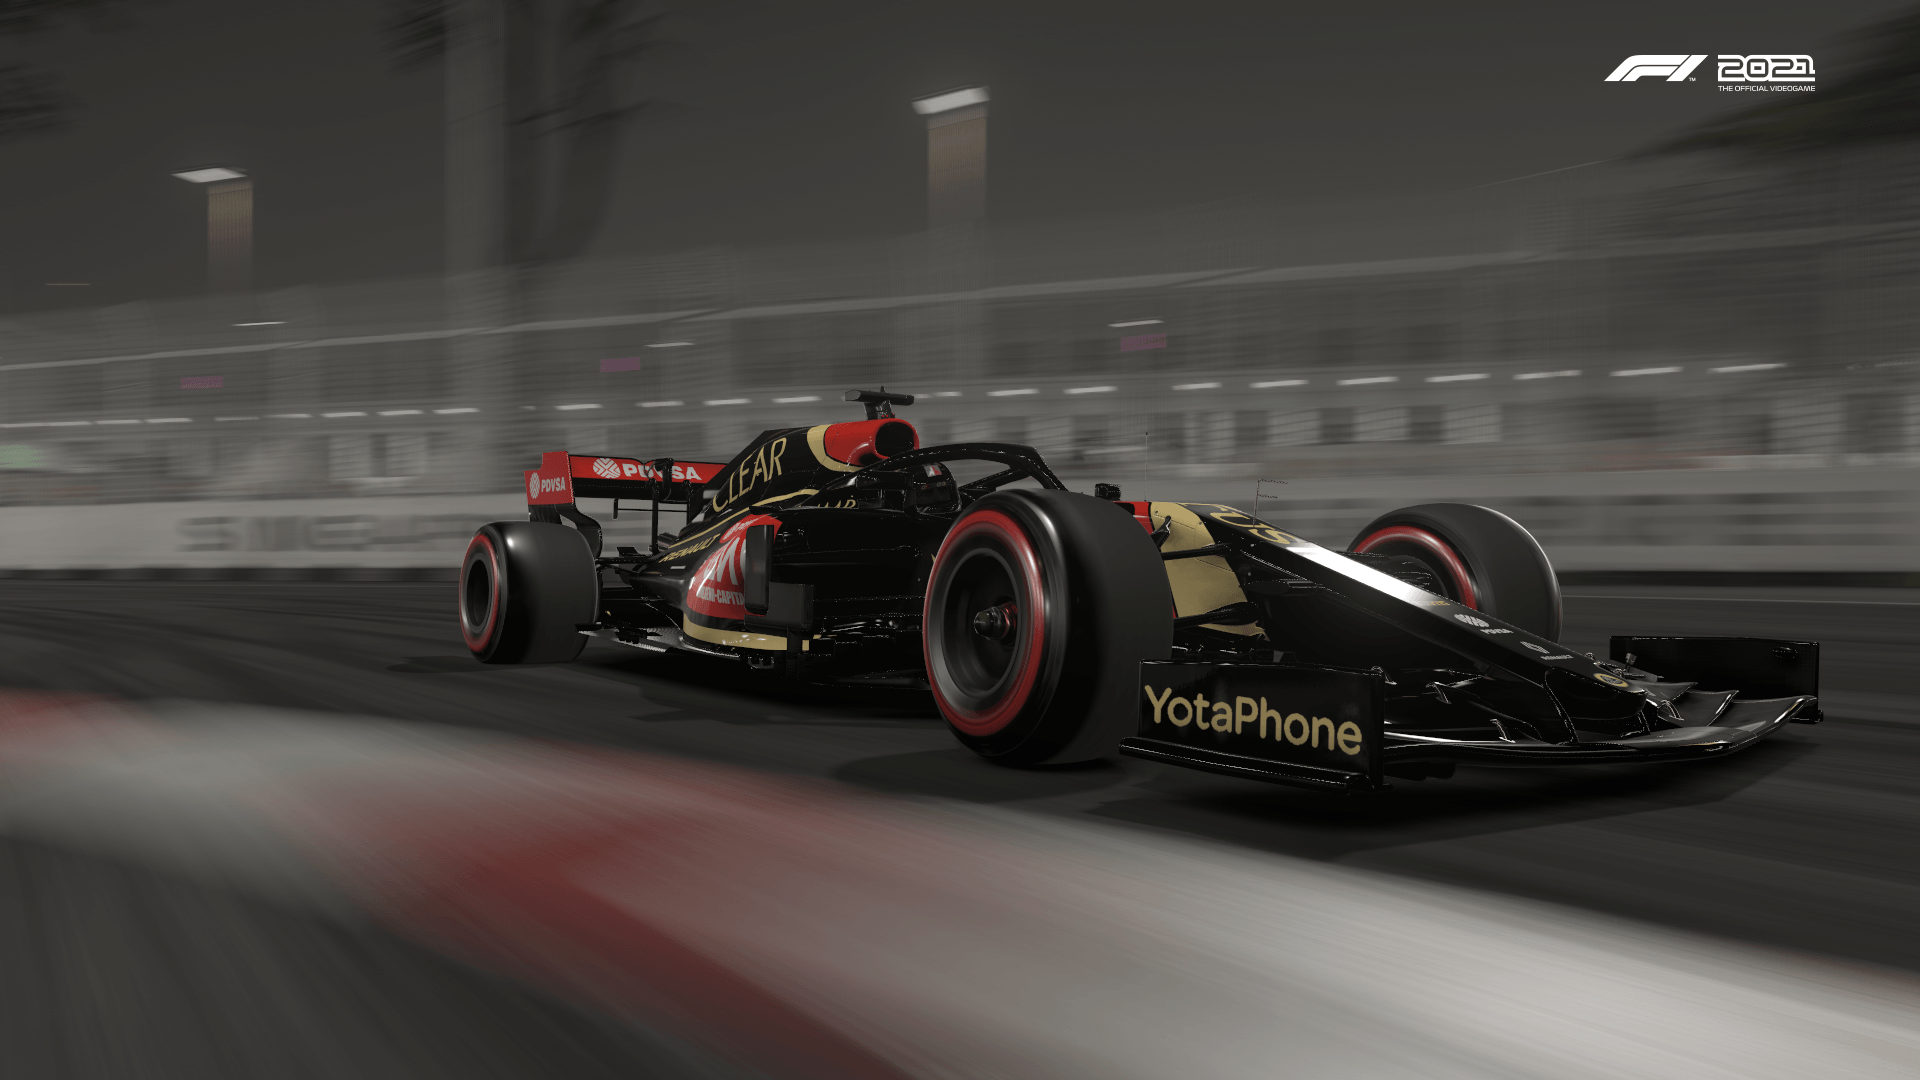 Lotus livery pic.png